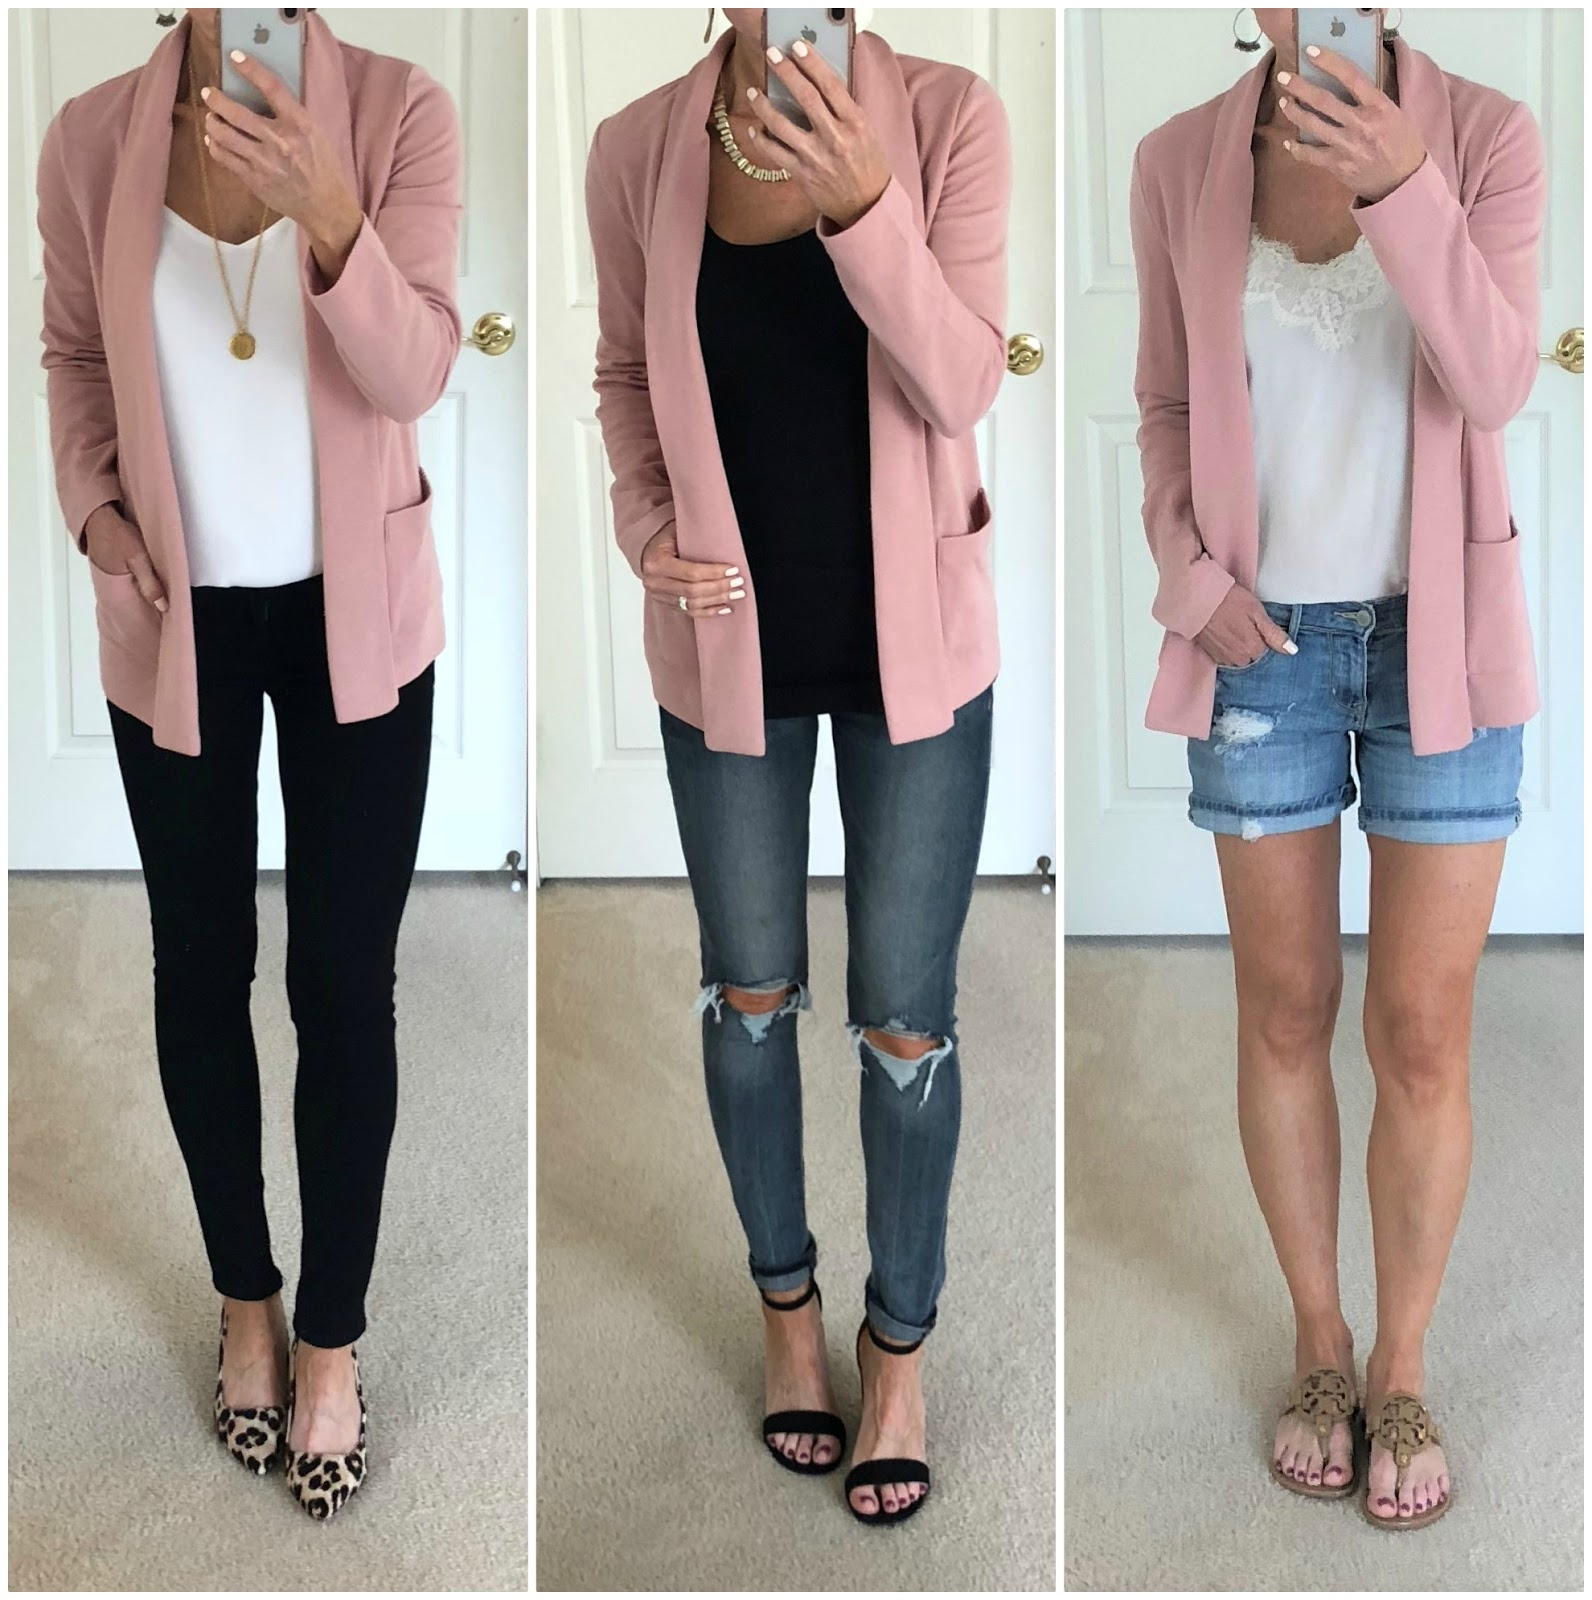 269d80516 ONE: Jacket | Similar Cami | Black Jeans | Necklace | Leopard Pumps TWO:  Pink Jacket | Black Tank | Similar Jeans | Sandals THREE: Pink Jacket |  Lace Trim ...